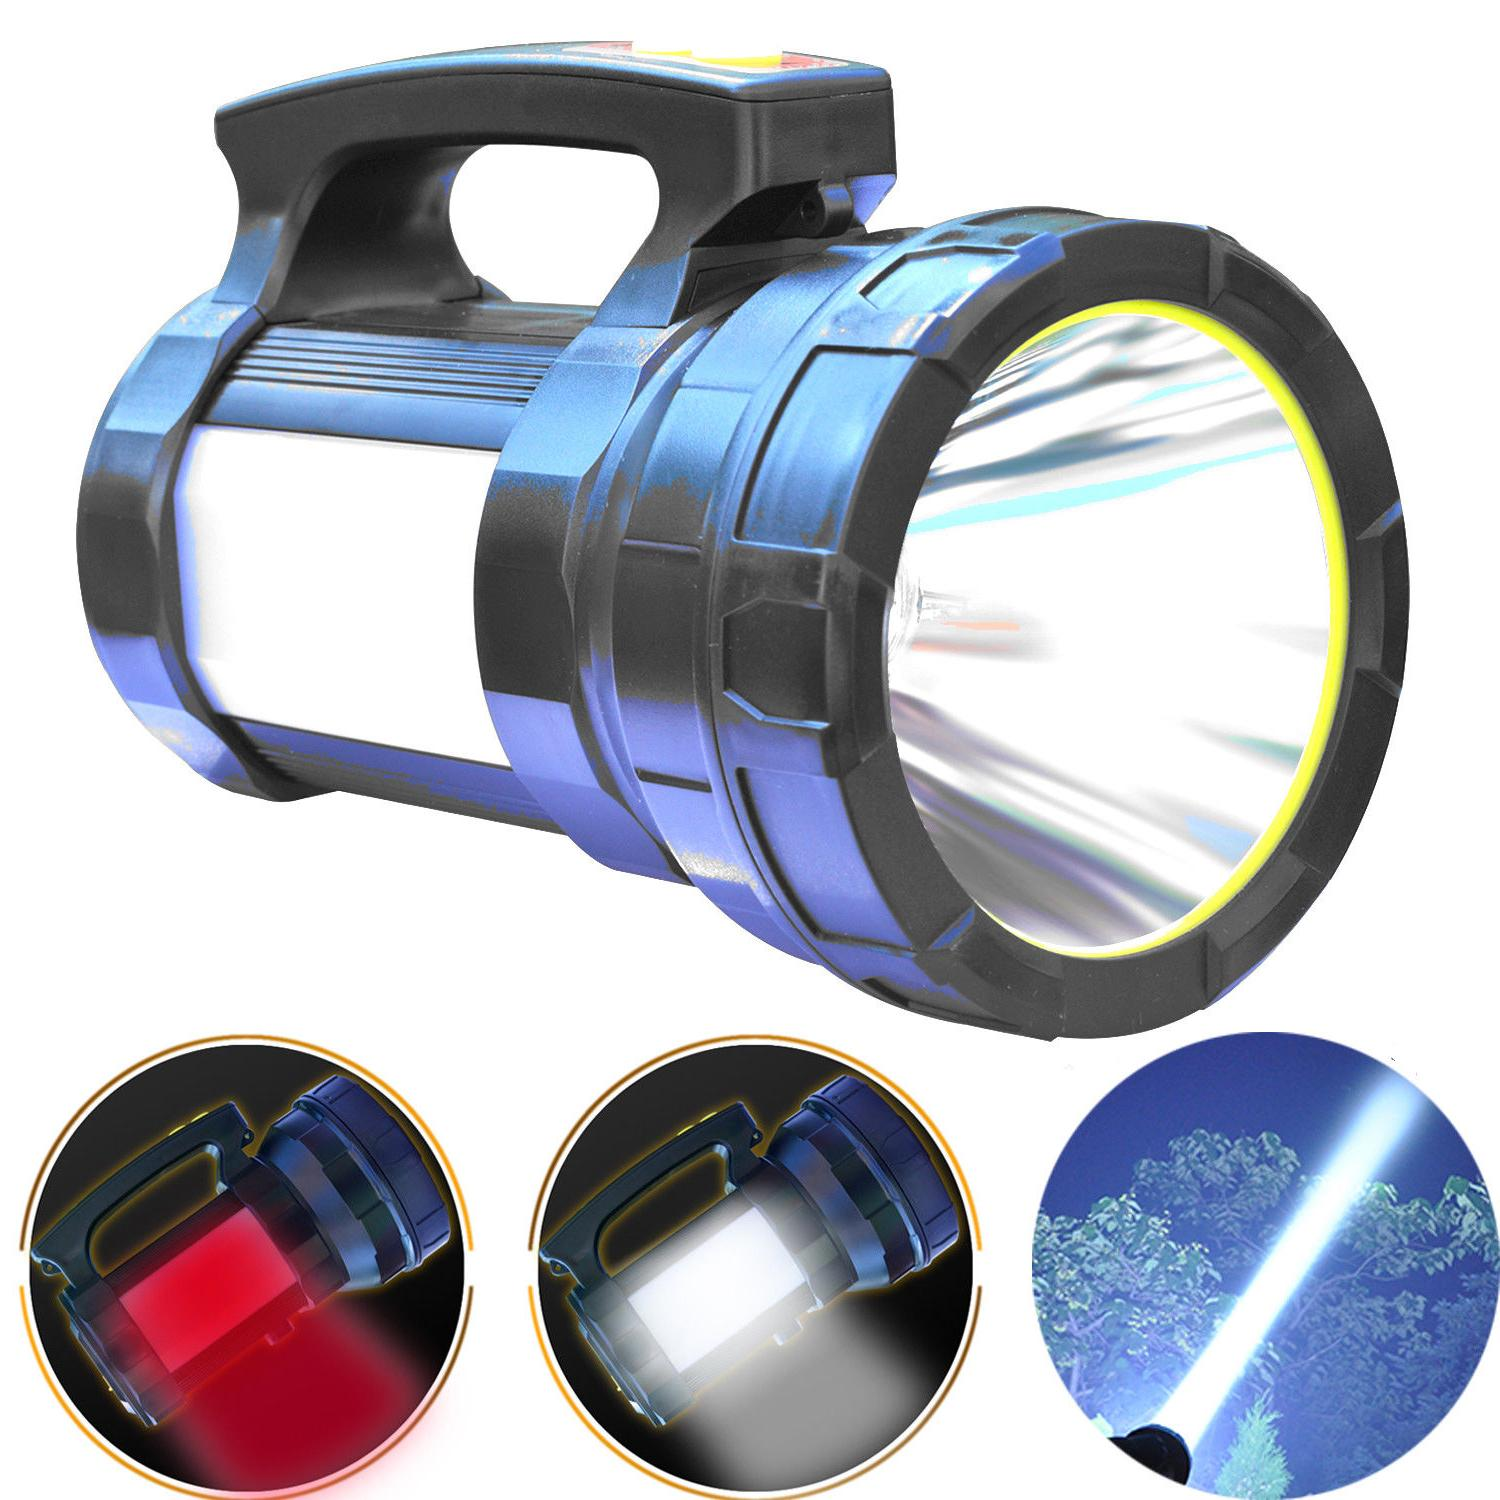 Super Searchlight Portable Spotlight flashlight